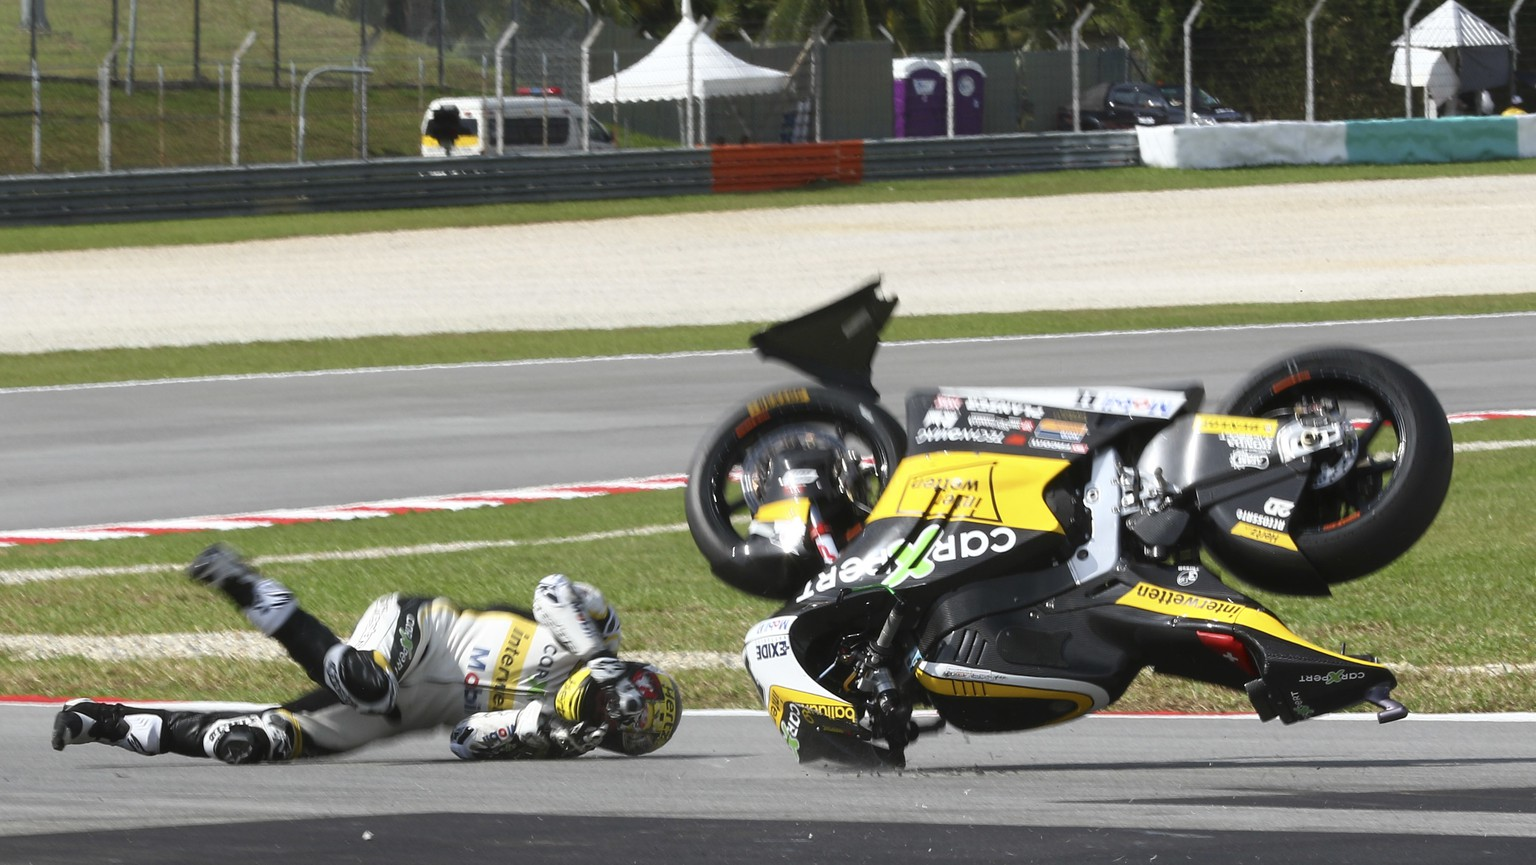 Switzerland's Moto2 rider Thomas Luthi crashes during the qualifying session of the Malaysia Moto2 at the Sepang International circuit in Sepang, Malaysia, Saturday, Oct. 28, 2017. (AP Photo/Vincent Phoon)